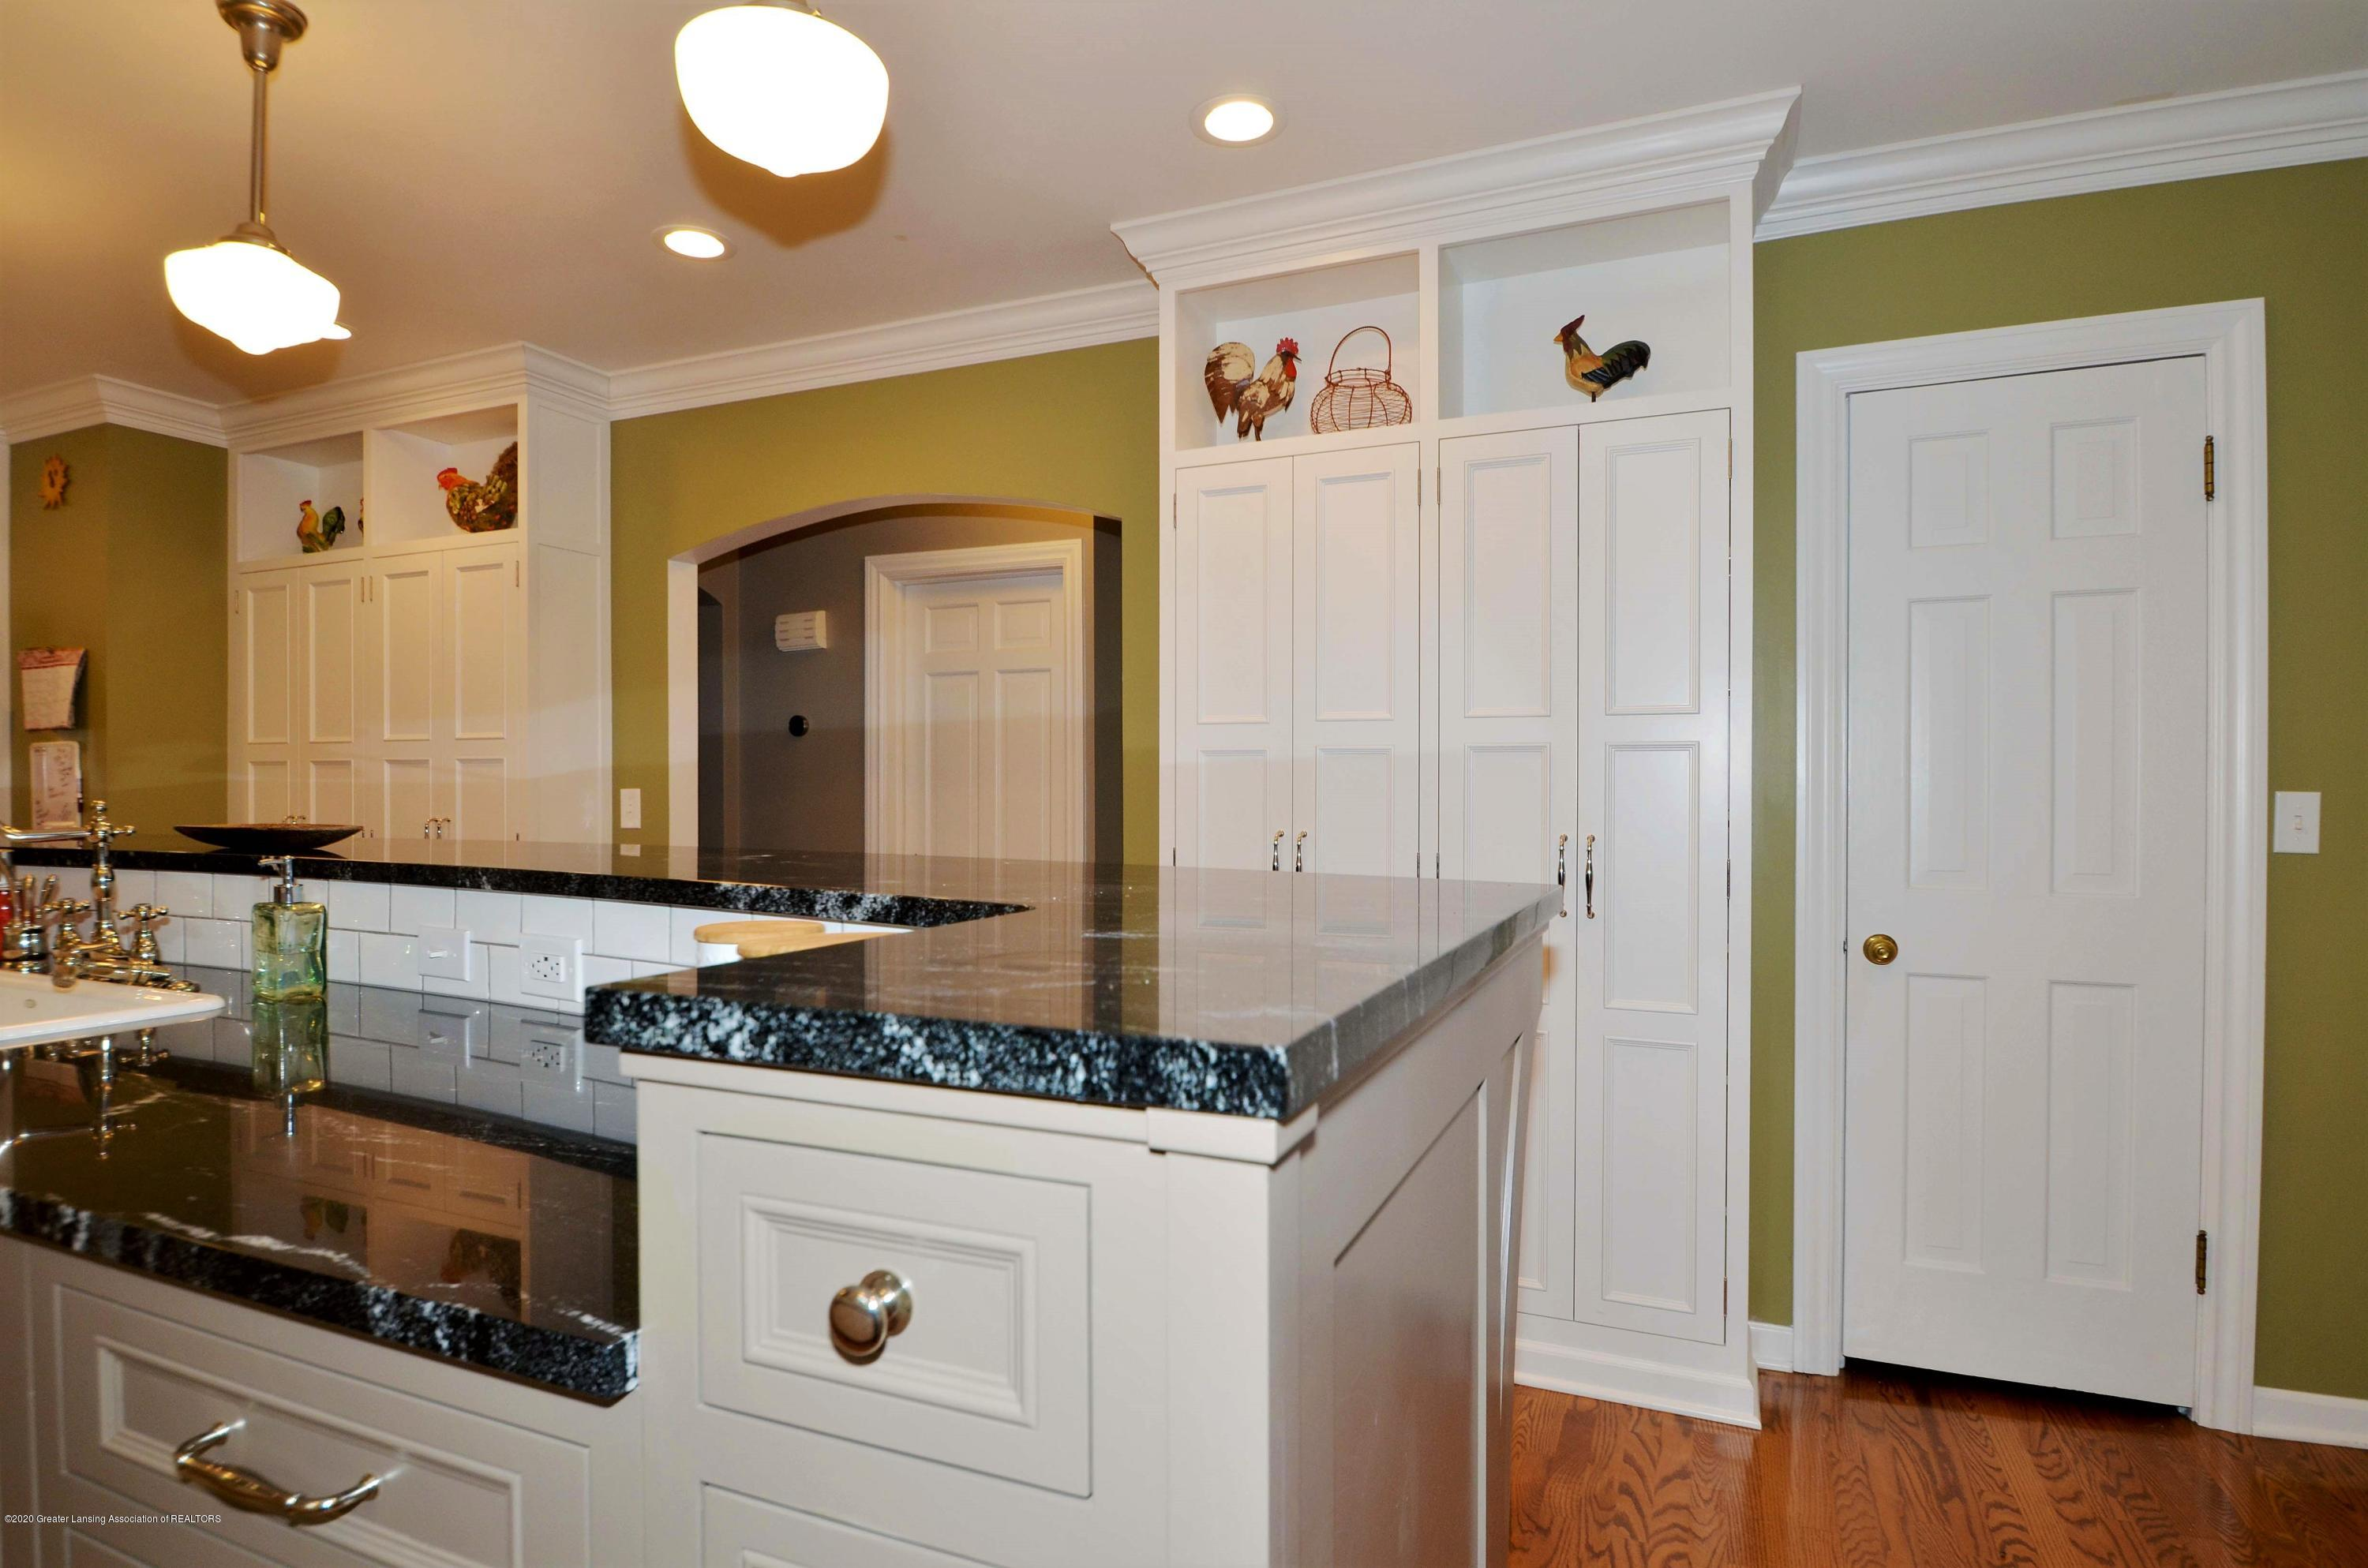 834 Rosewood Ave - Kitchen walk-in Pantry - 22